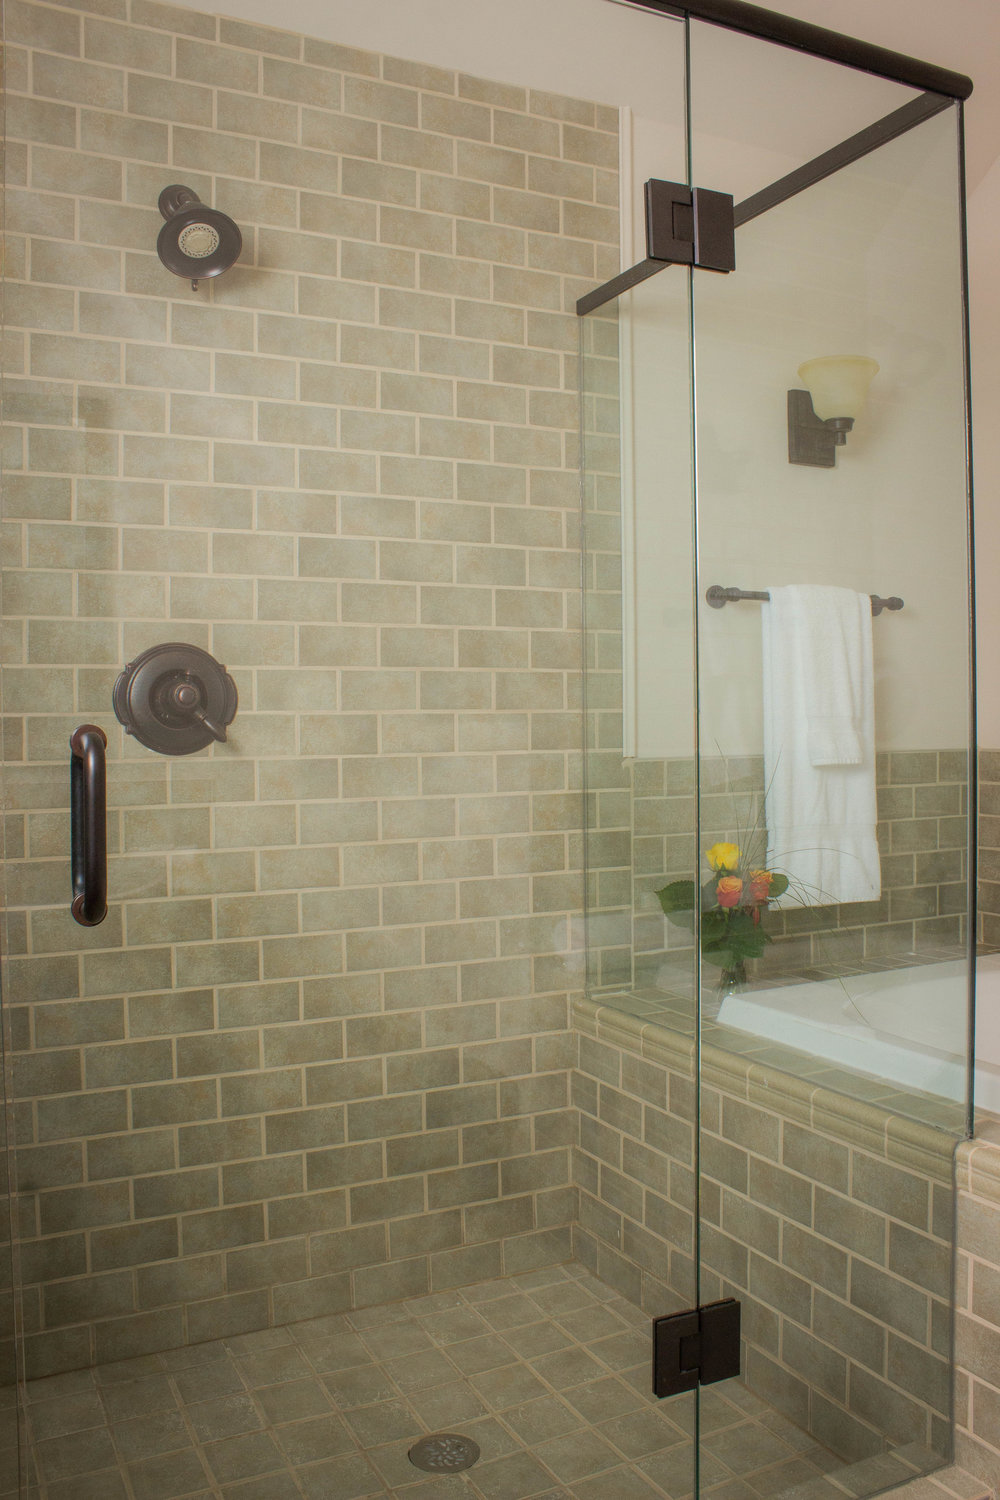 Extensive glass shower enclosures in bathrooms